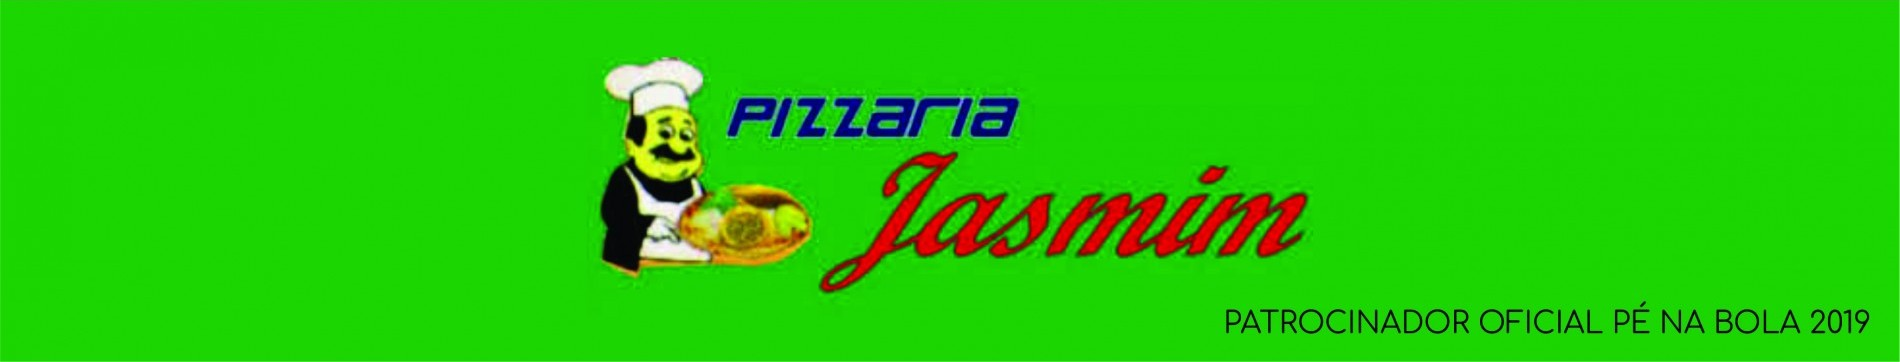 uploads/multimidia/20190621030001-pizzaria-jasmin.jpg